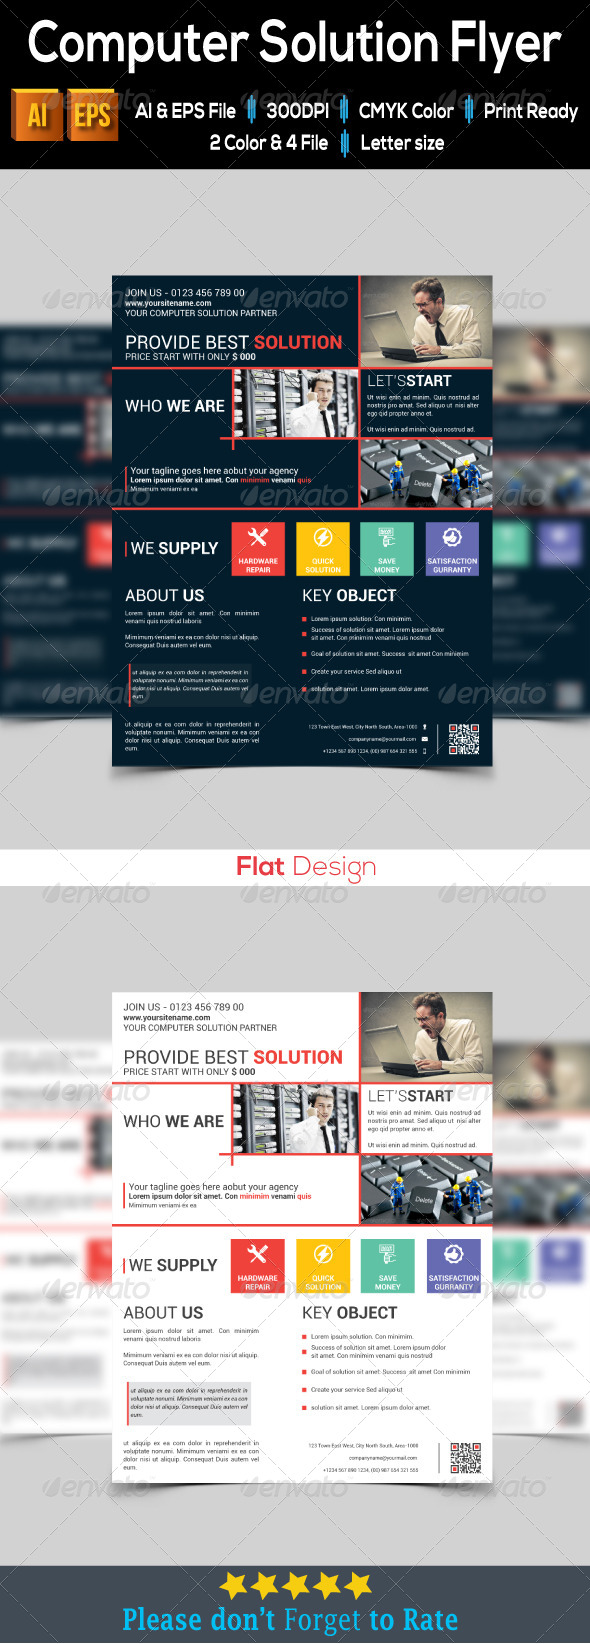 Computer Solution Flyer - Corporate Flyers